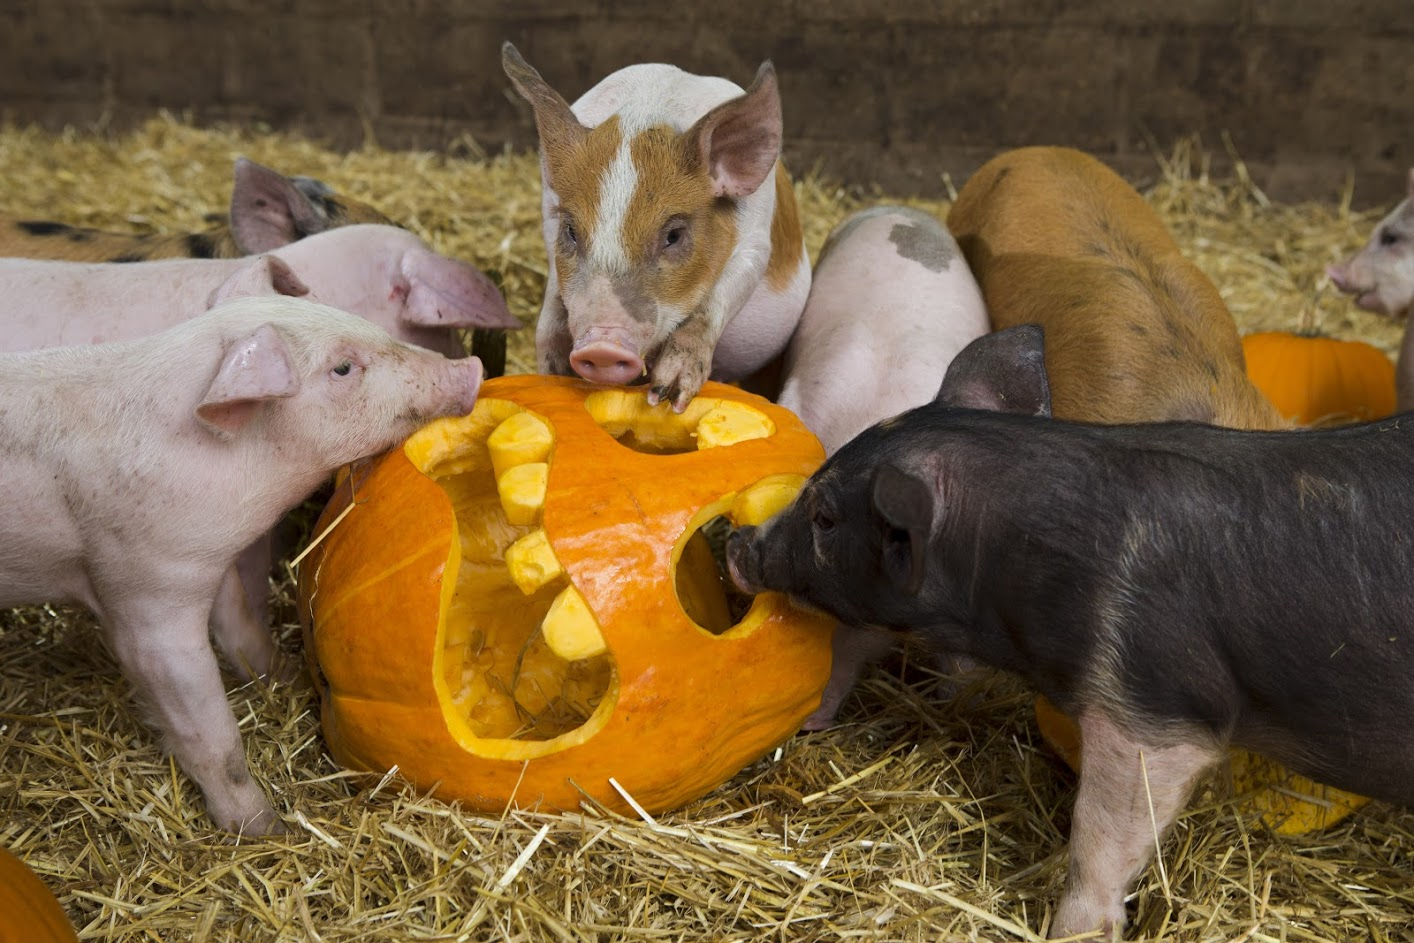 RSPCA Assured farmer gives pigs pumpkins to play with